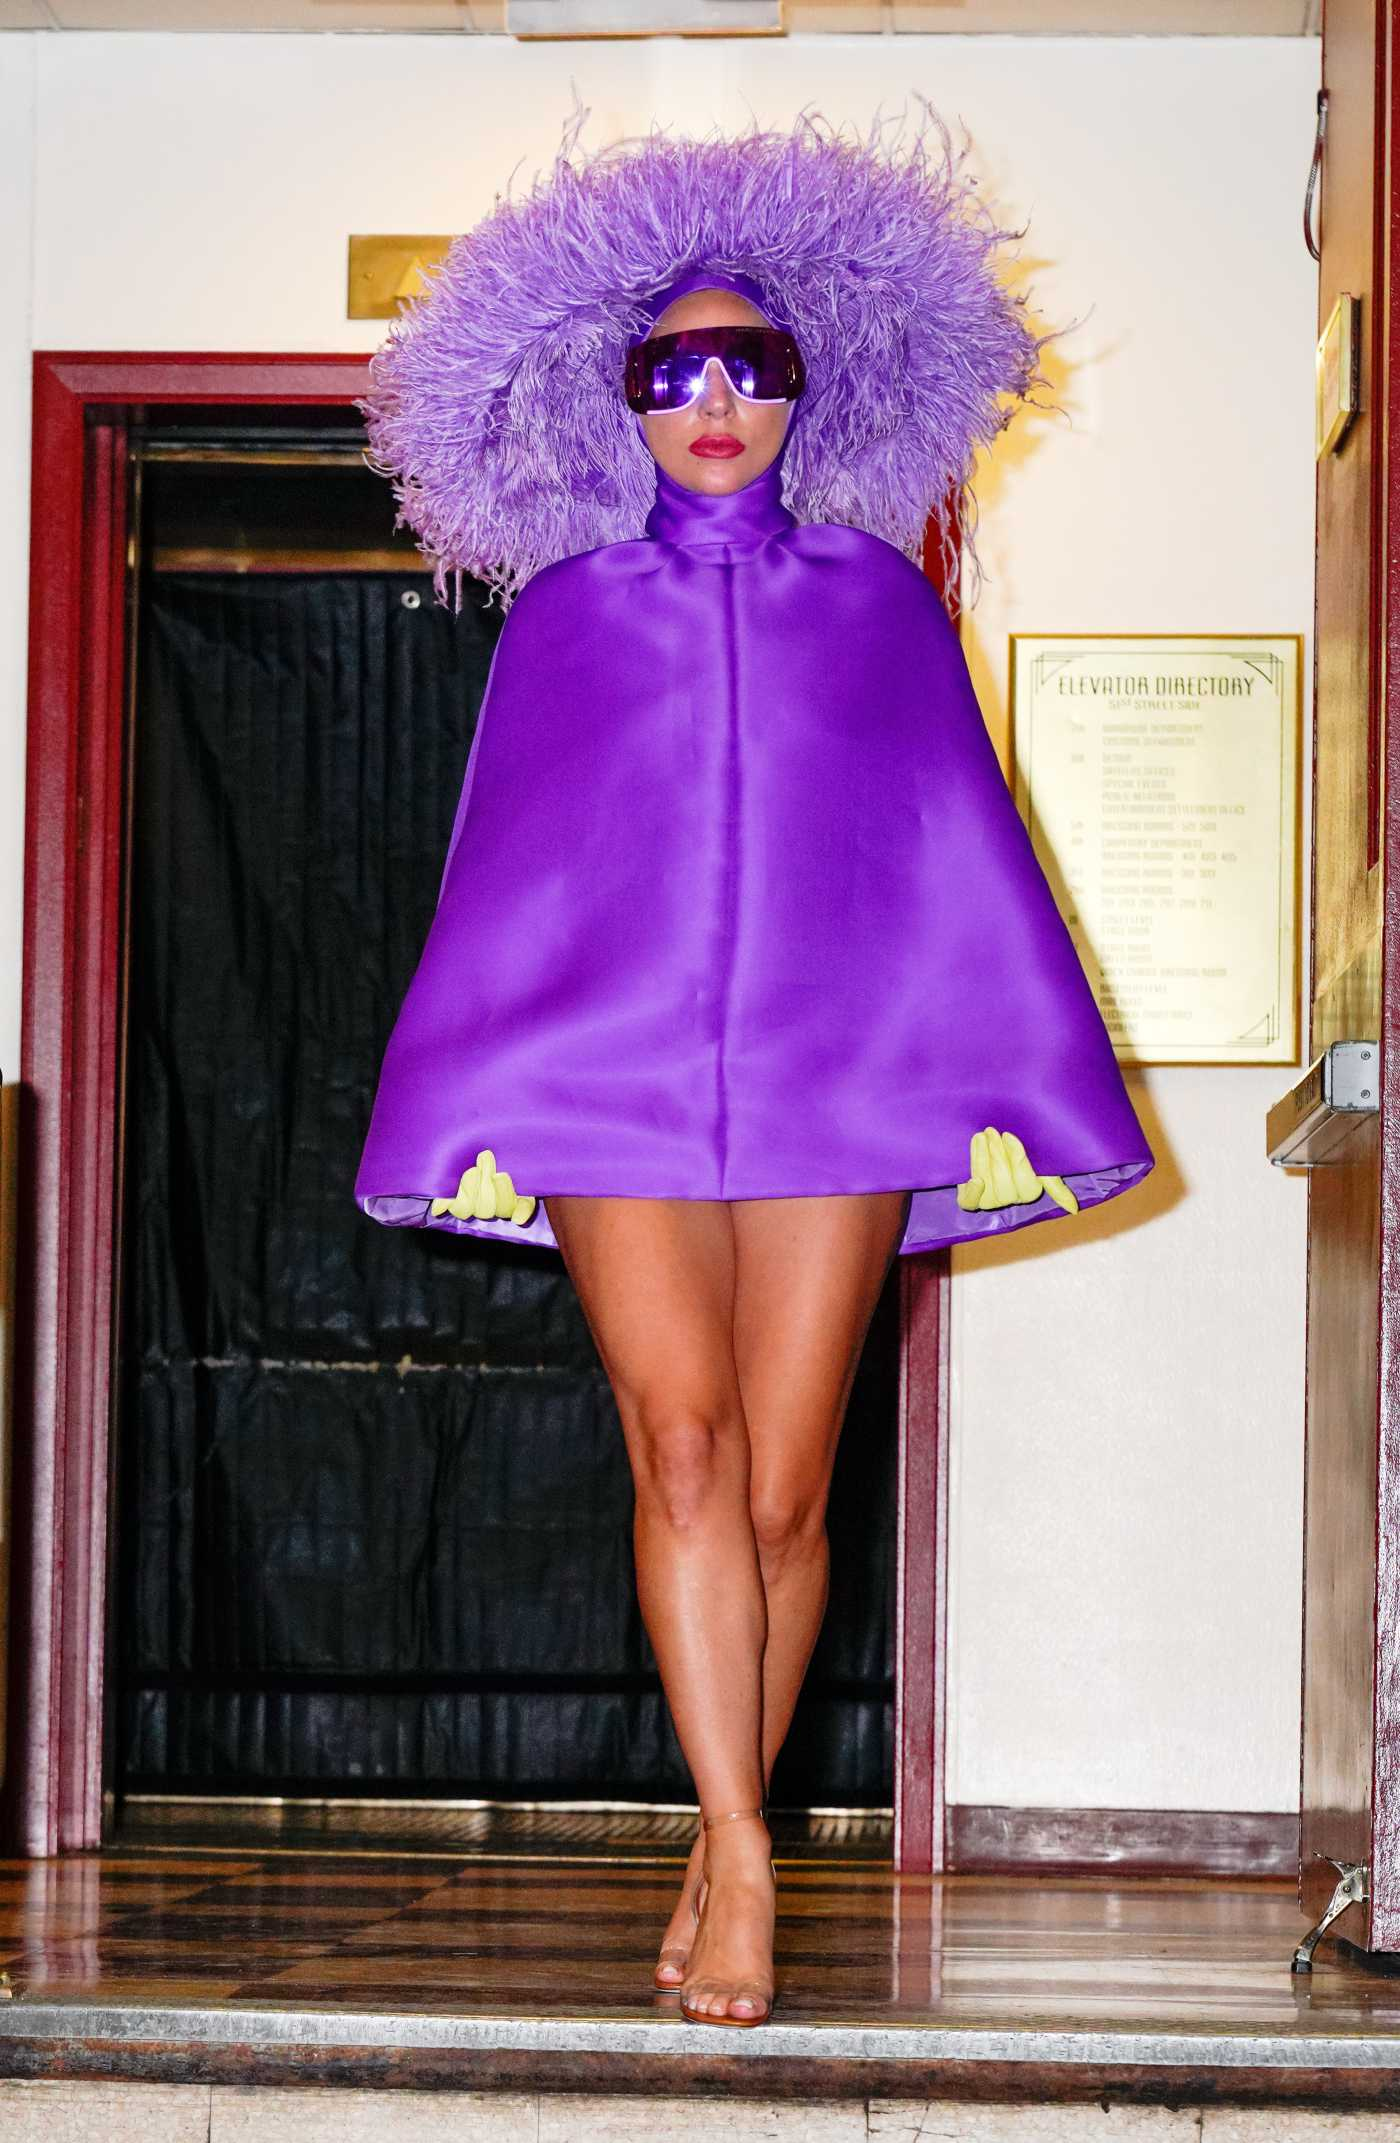 Lady Gaga in a Purple Outfit Departs the Rehearsals at Radio City Music Hall in NYC 08/01/2021